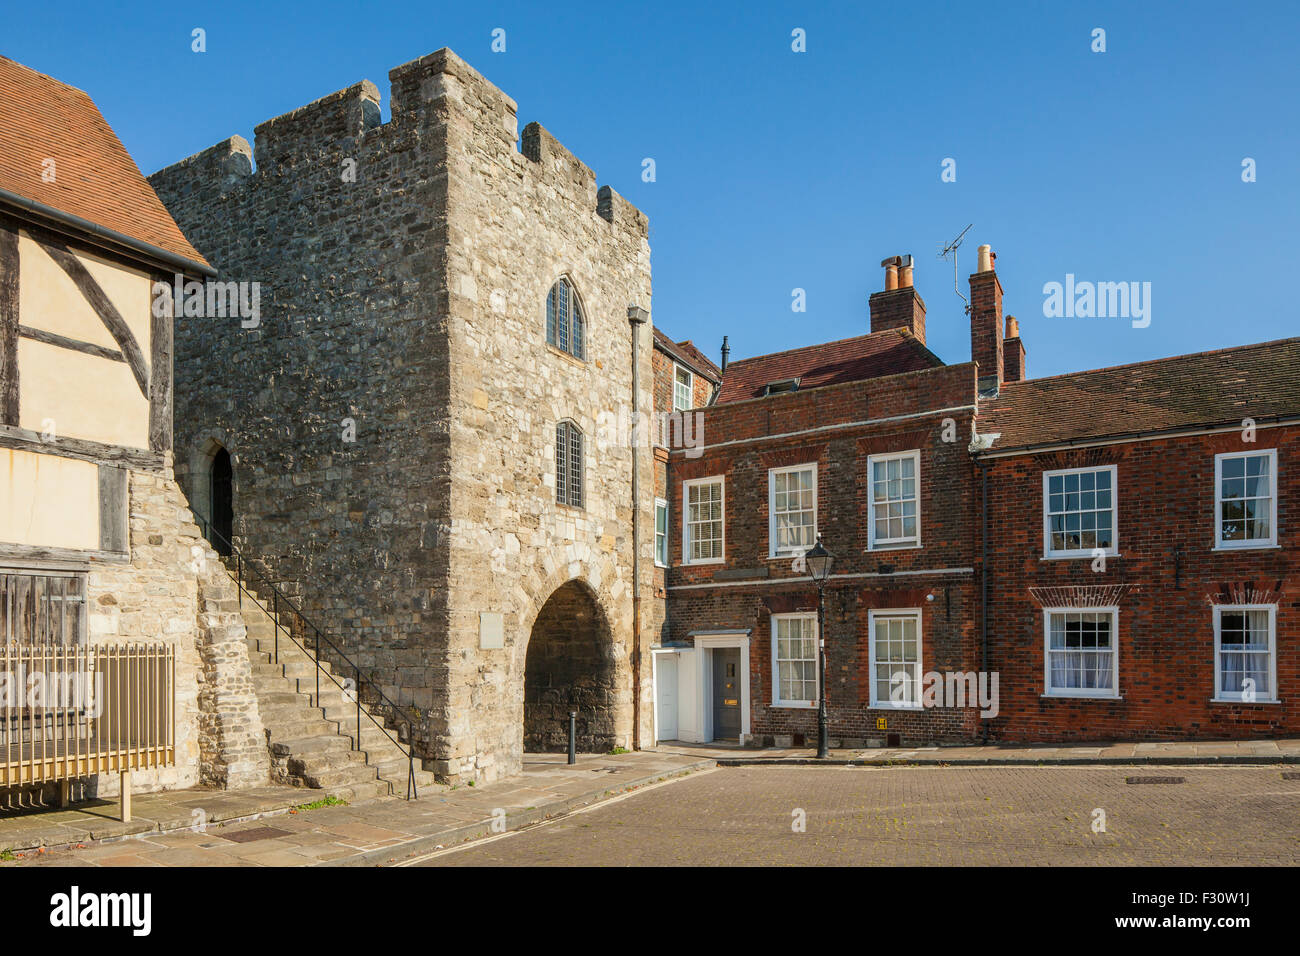 Morning at West Gate in Southampton, Hampshire, England. - Stock Image